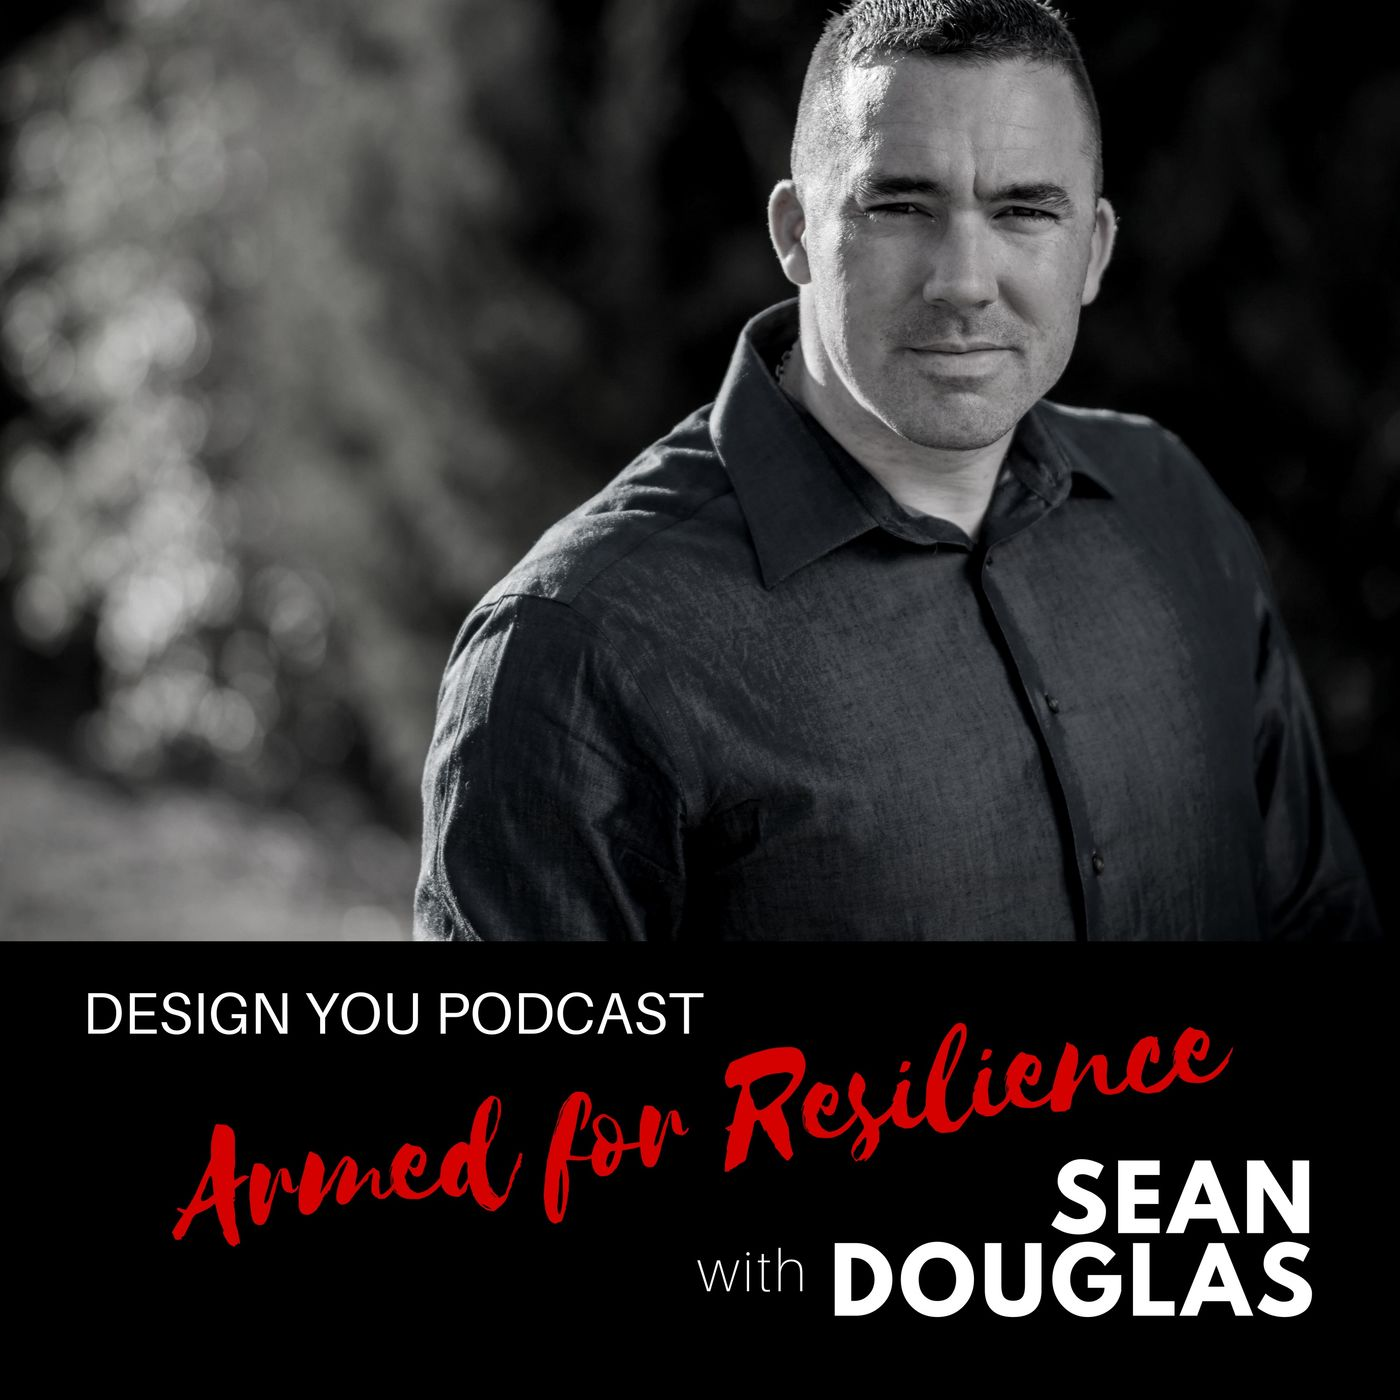 EP 037 – Armed for Resilience with Sean Douglas